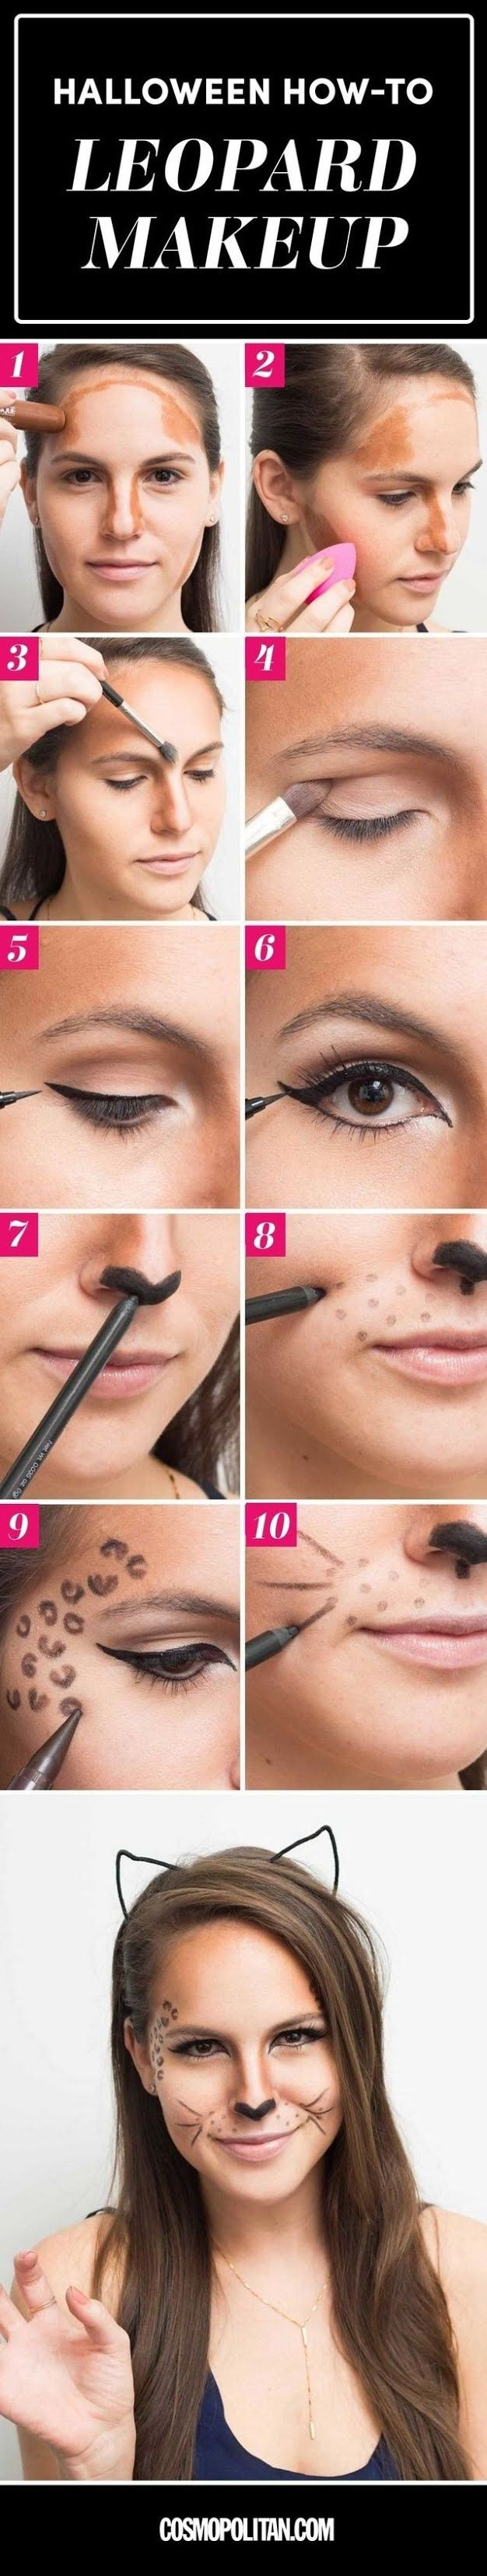 Easy Halloween Makeup Tutorials - Halloween Makeup Ideas With Products You Already Have